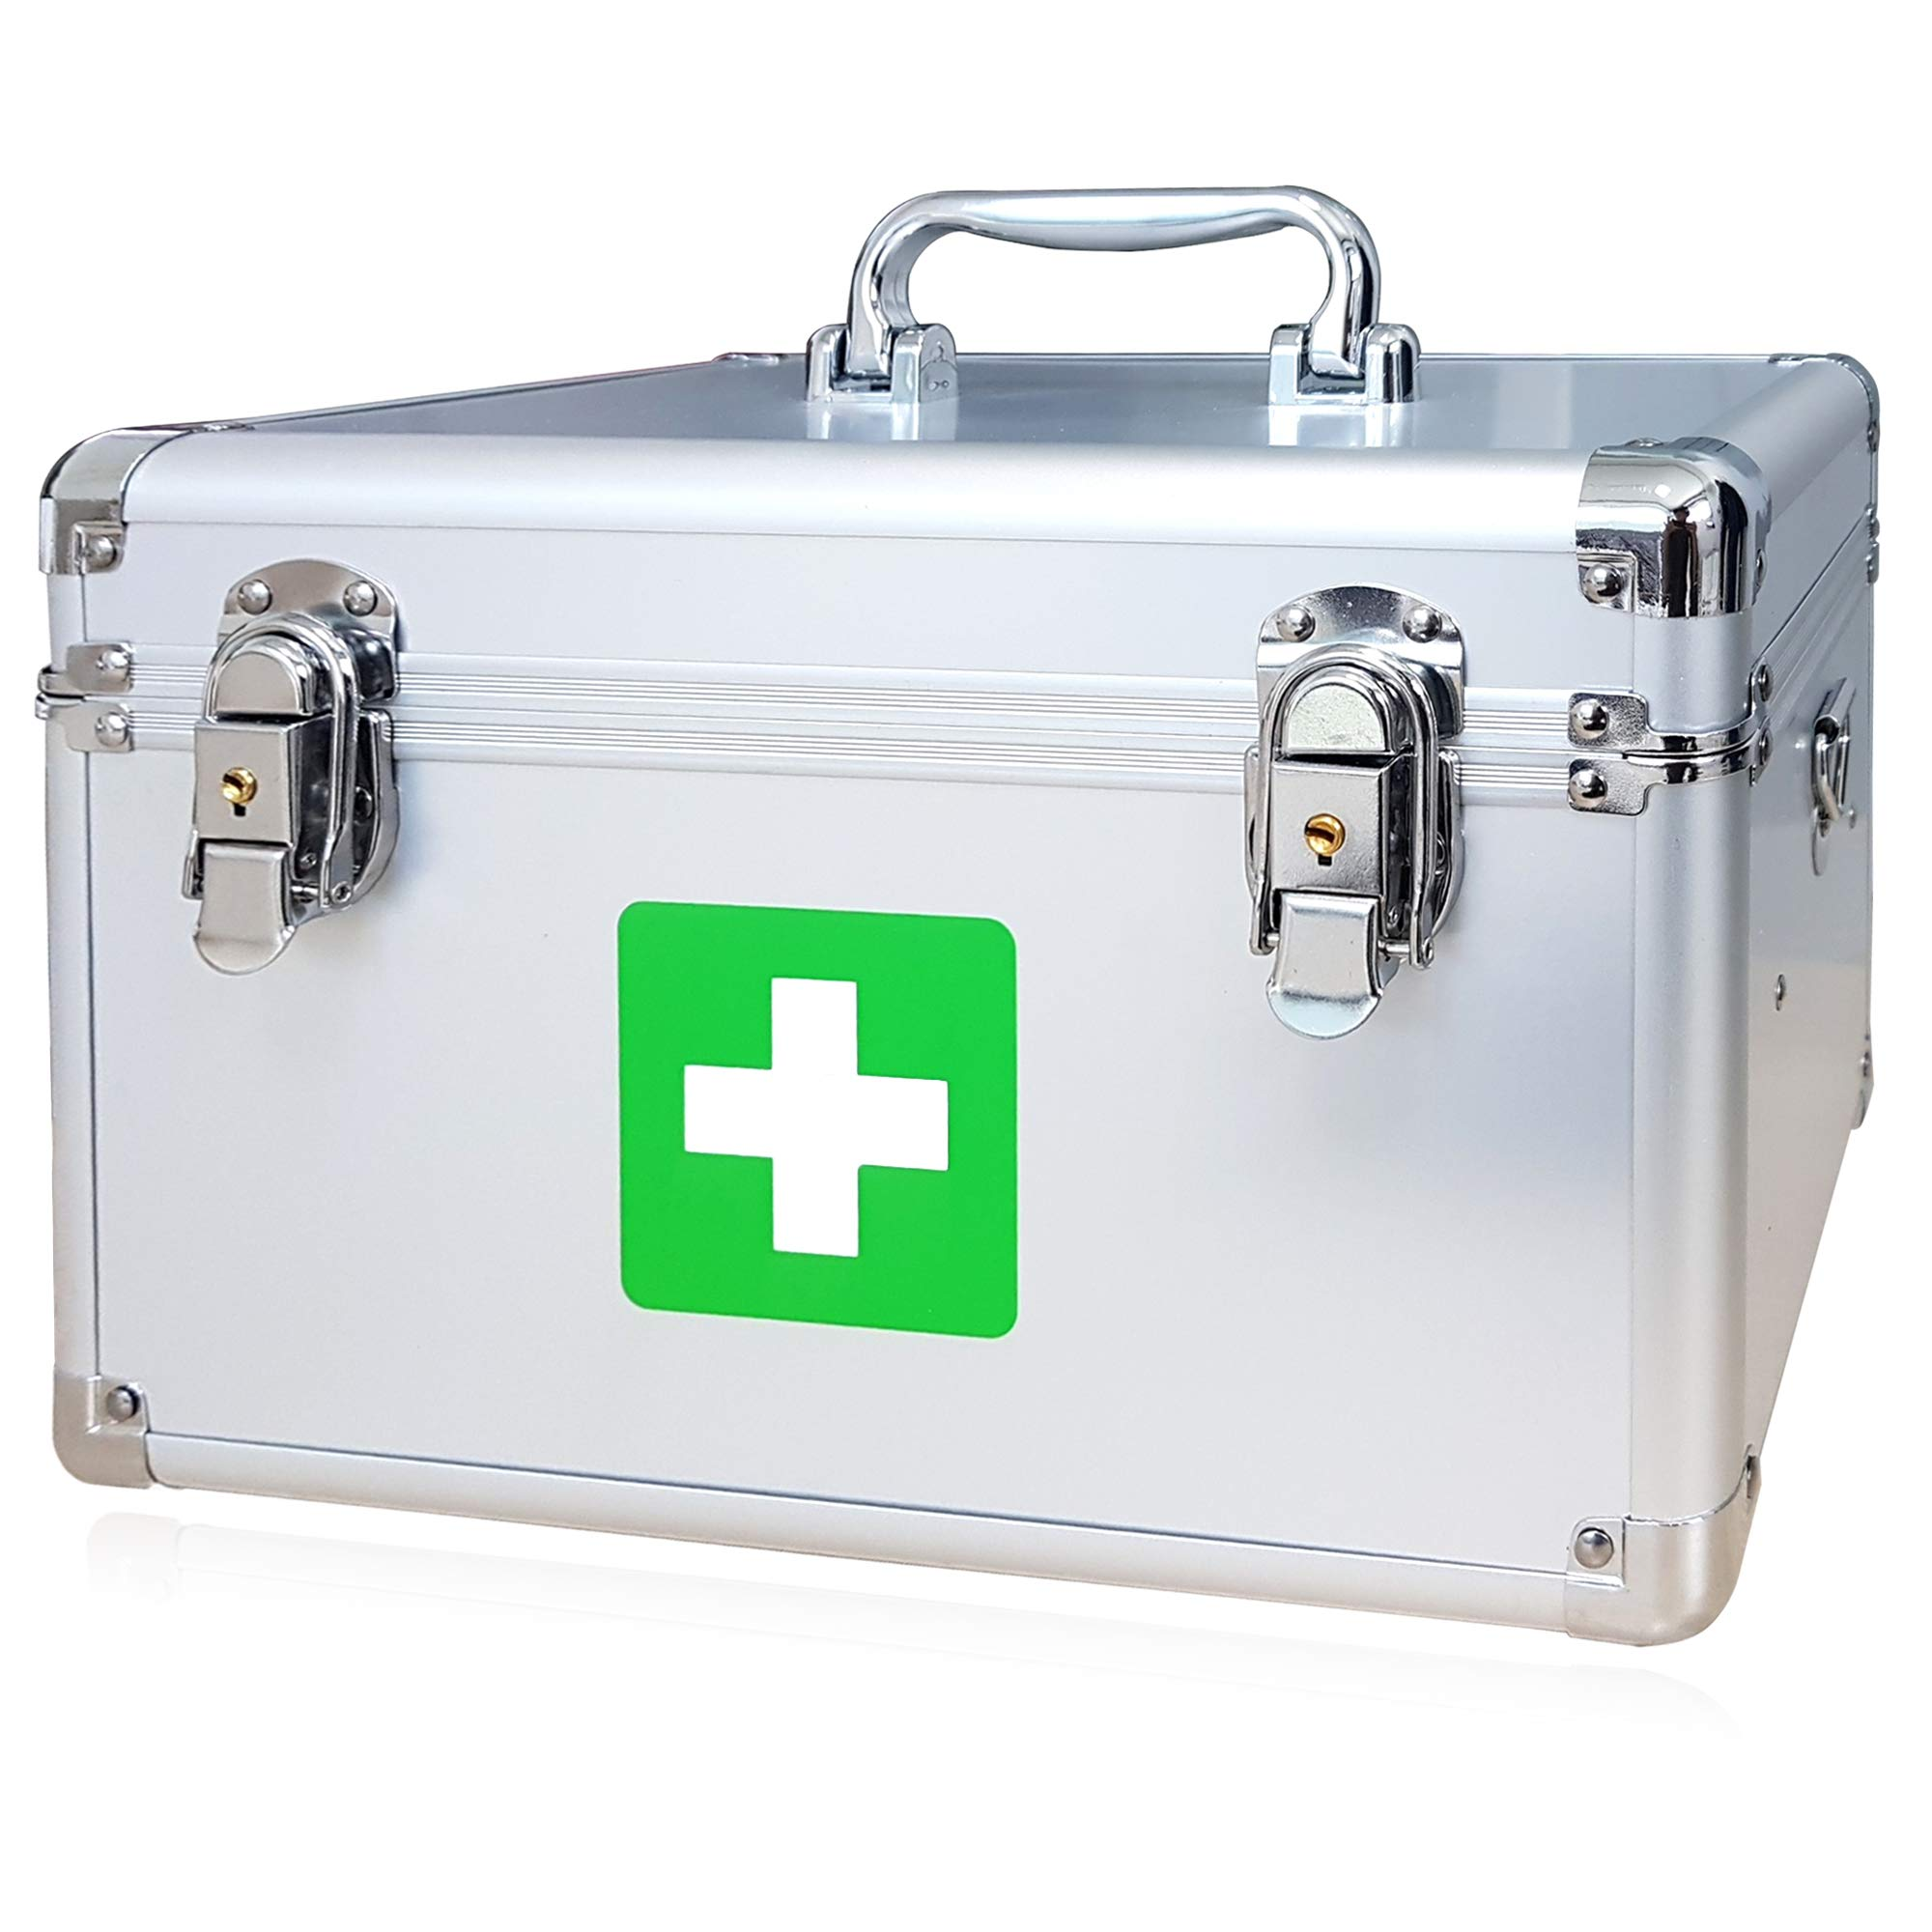 Morning Plus - First aid kit Lockable Medication Box Organizer Emergency Medicine Storage Box Aluminum Medical Box 12'' x 7.1'' x 7.5'' inches (Silver) by morning plus first aid box